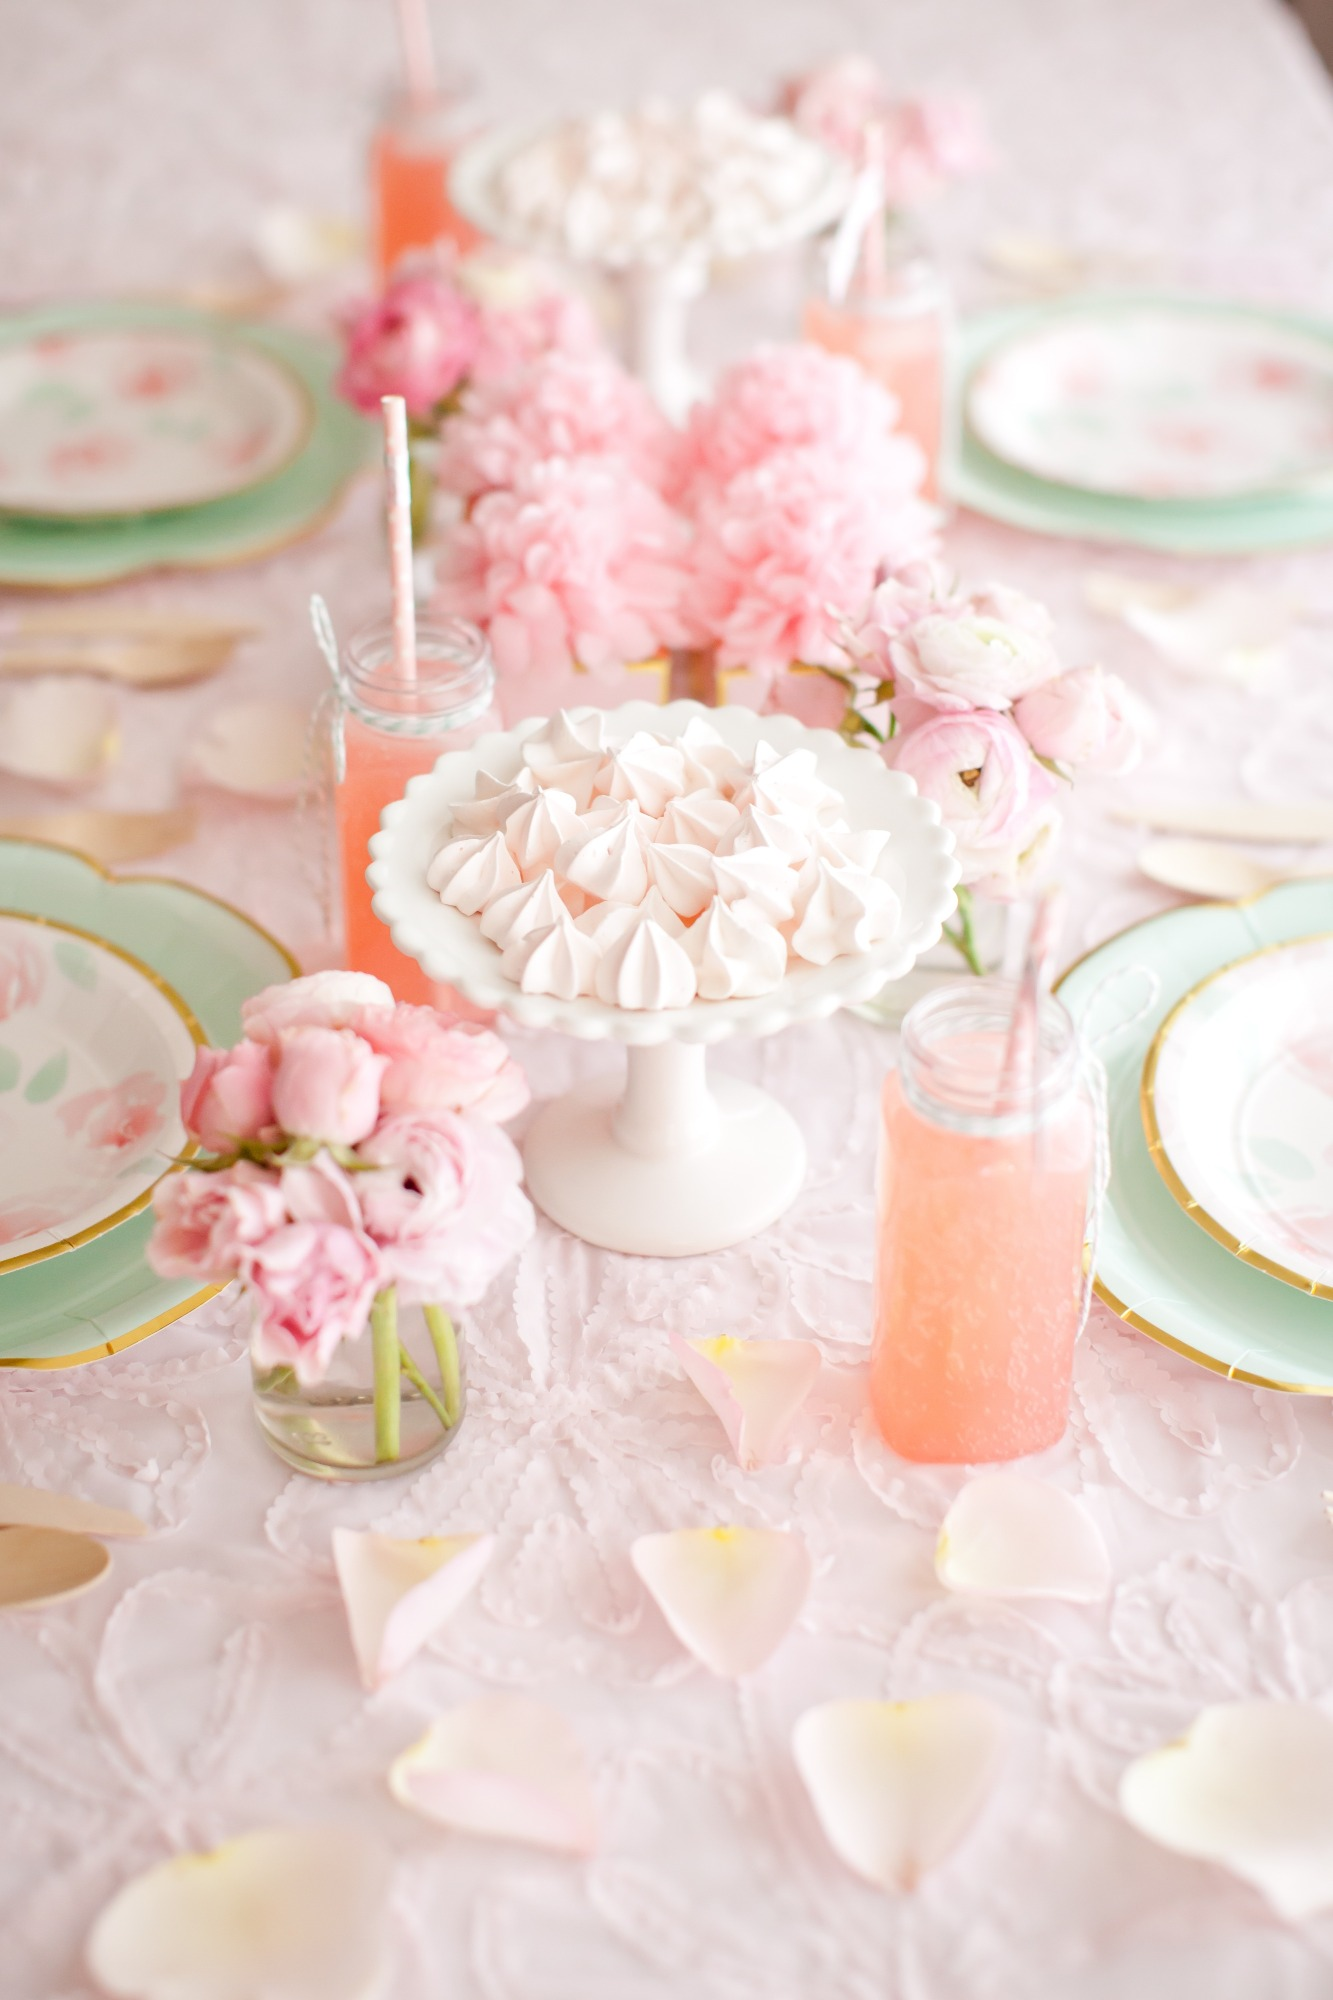 Tablescape from Mother's Day Brunch Styled by Kiss Me Kate Studio | Black Twine